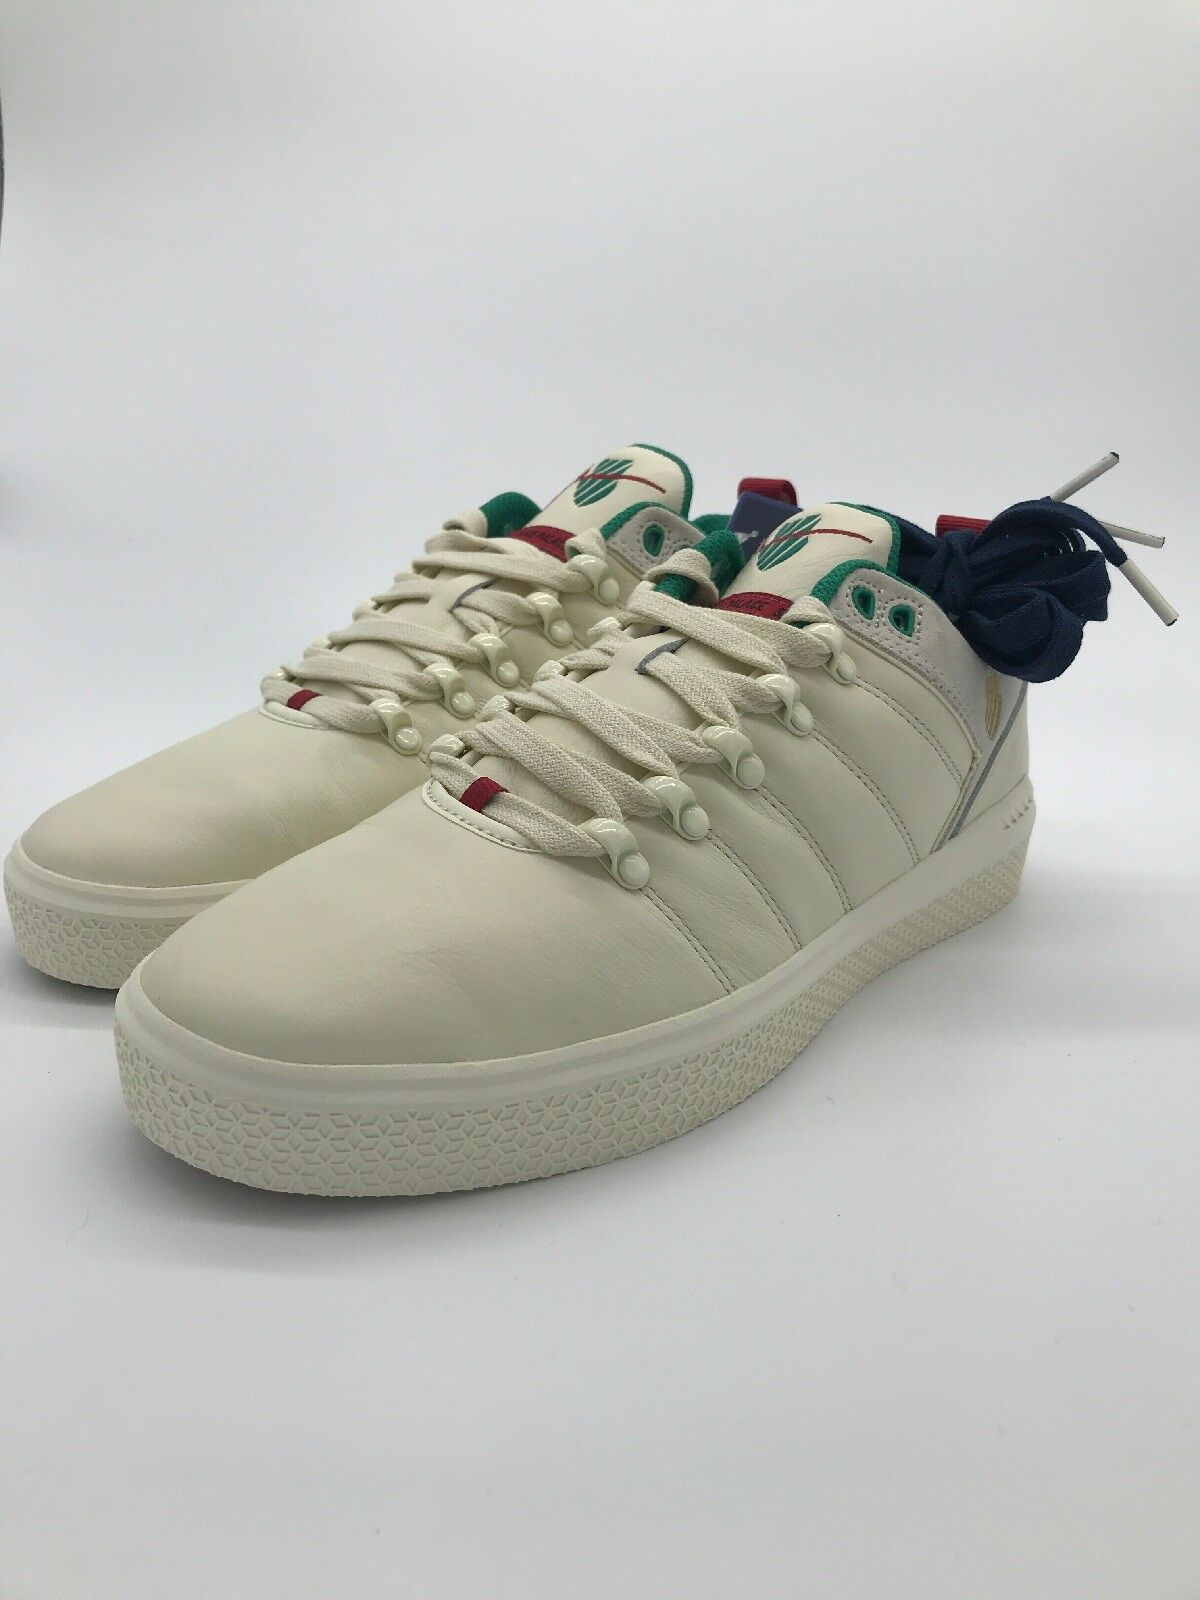 shoes Palace X K Swiss GARYVEE SP25 ANNIVERSARY (Antique White Green Red)sz 11.5